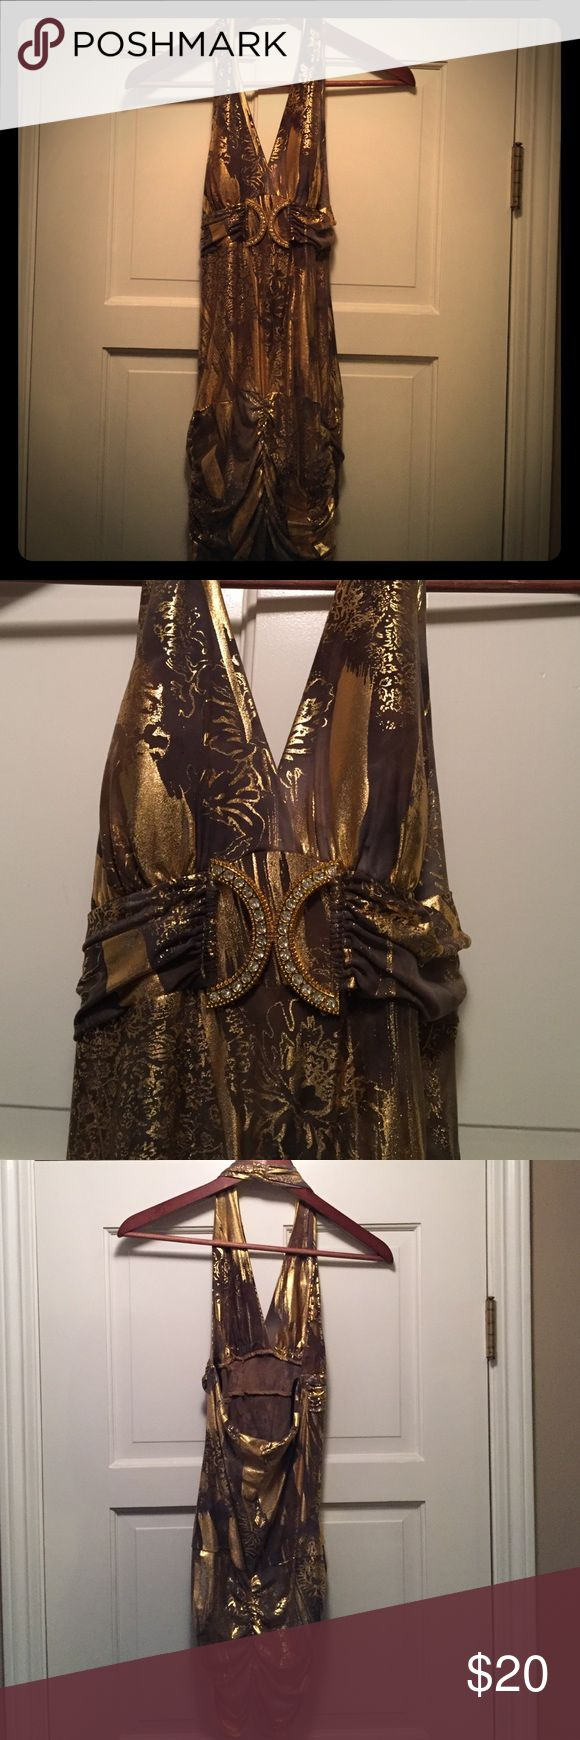 Tight-fitting gold night out dress This a dress that will turn heads. Very form fitting. Deep plunge, and low back. Only worn once for a photo shoot. Very very sexy Papaya Dresses Mini